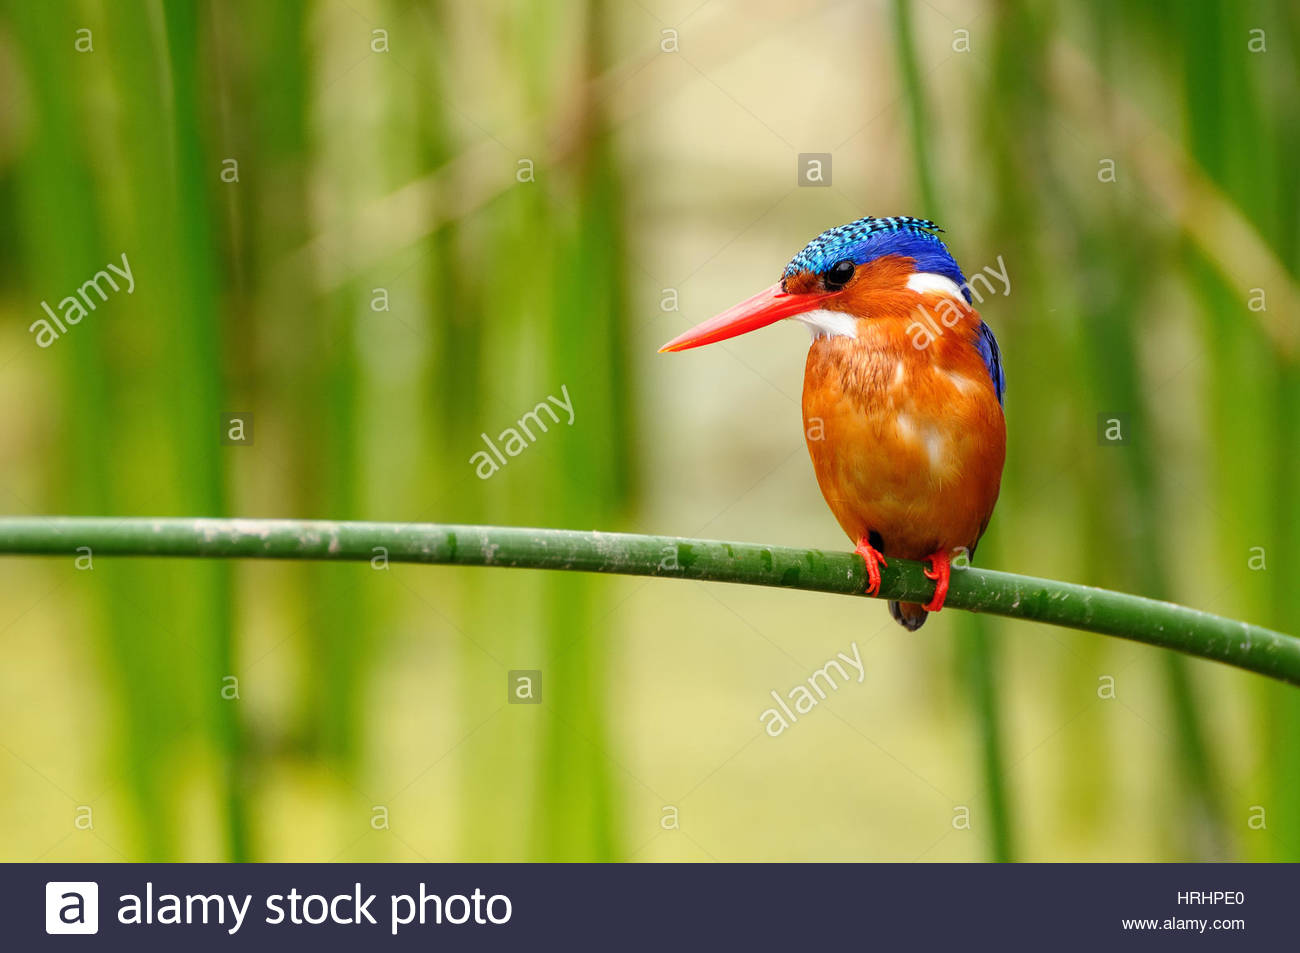 Amora Gedel Park Awasa, Kingfisher in the Amora Gedel national park in the vicinity of the ...